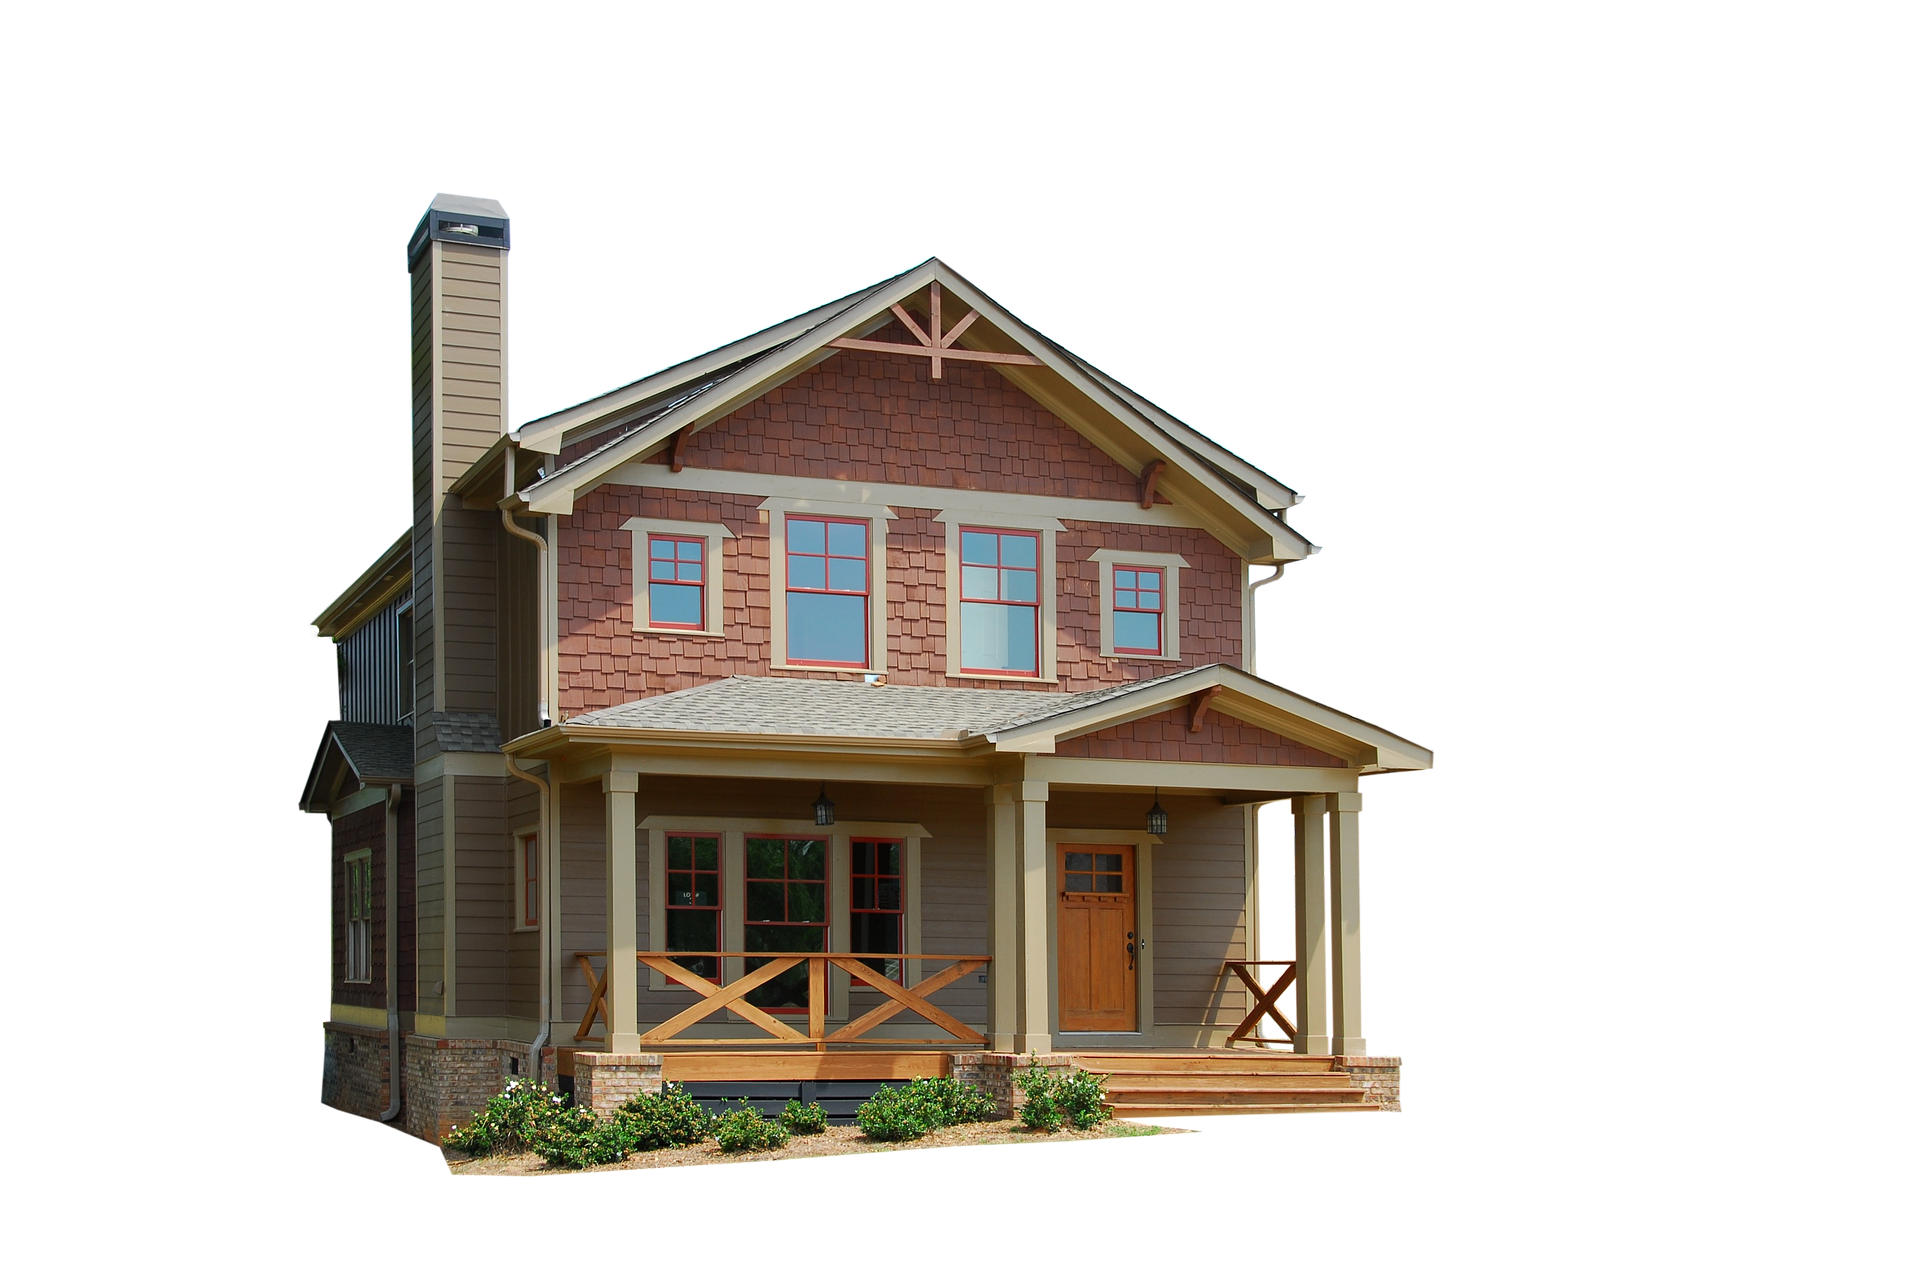 How to evaluate real estate projects